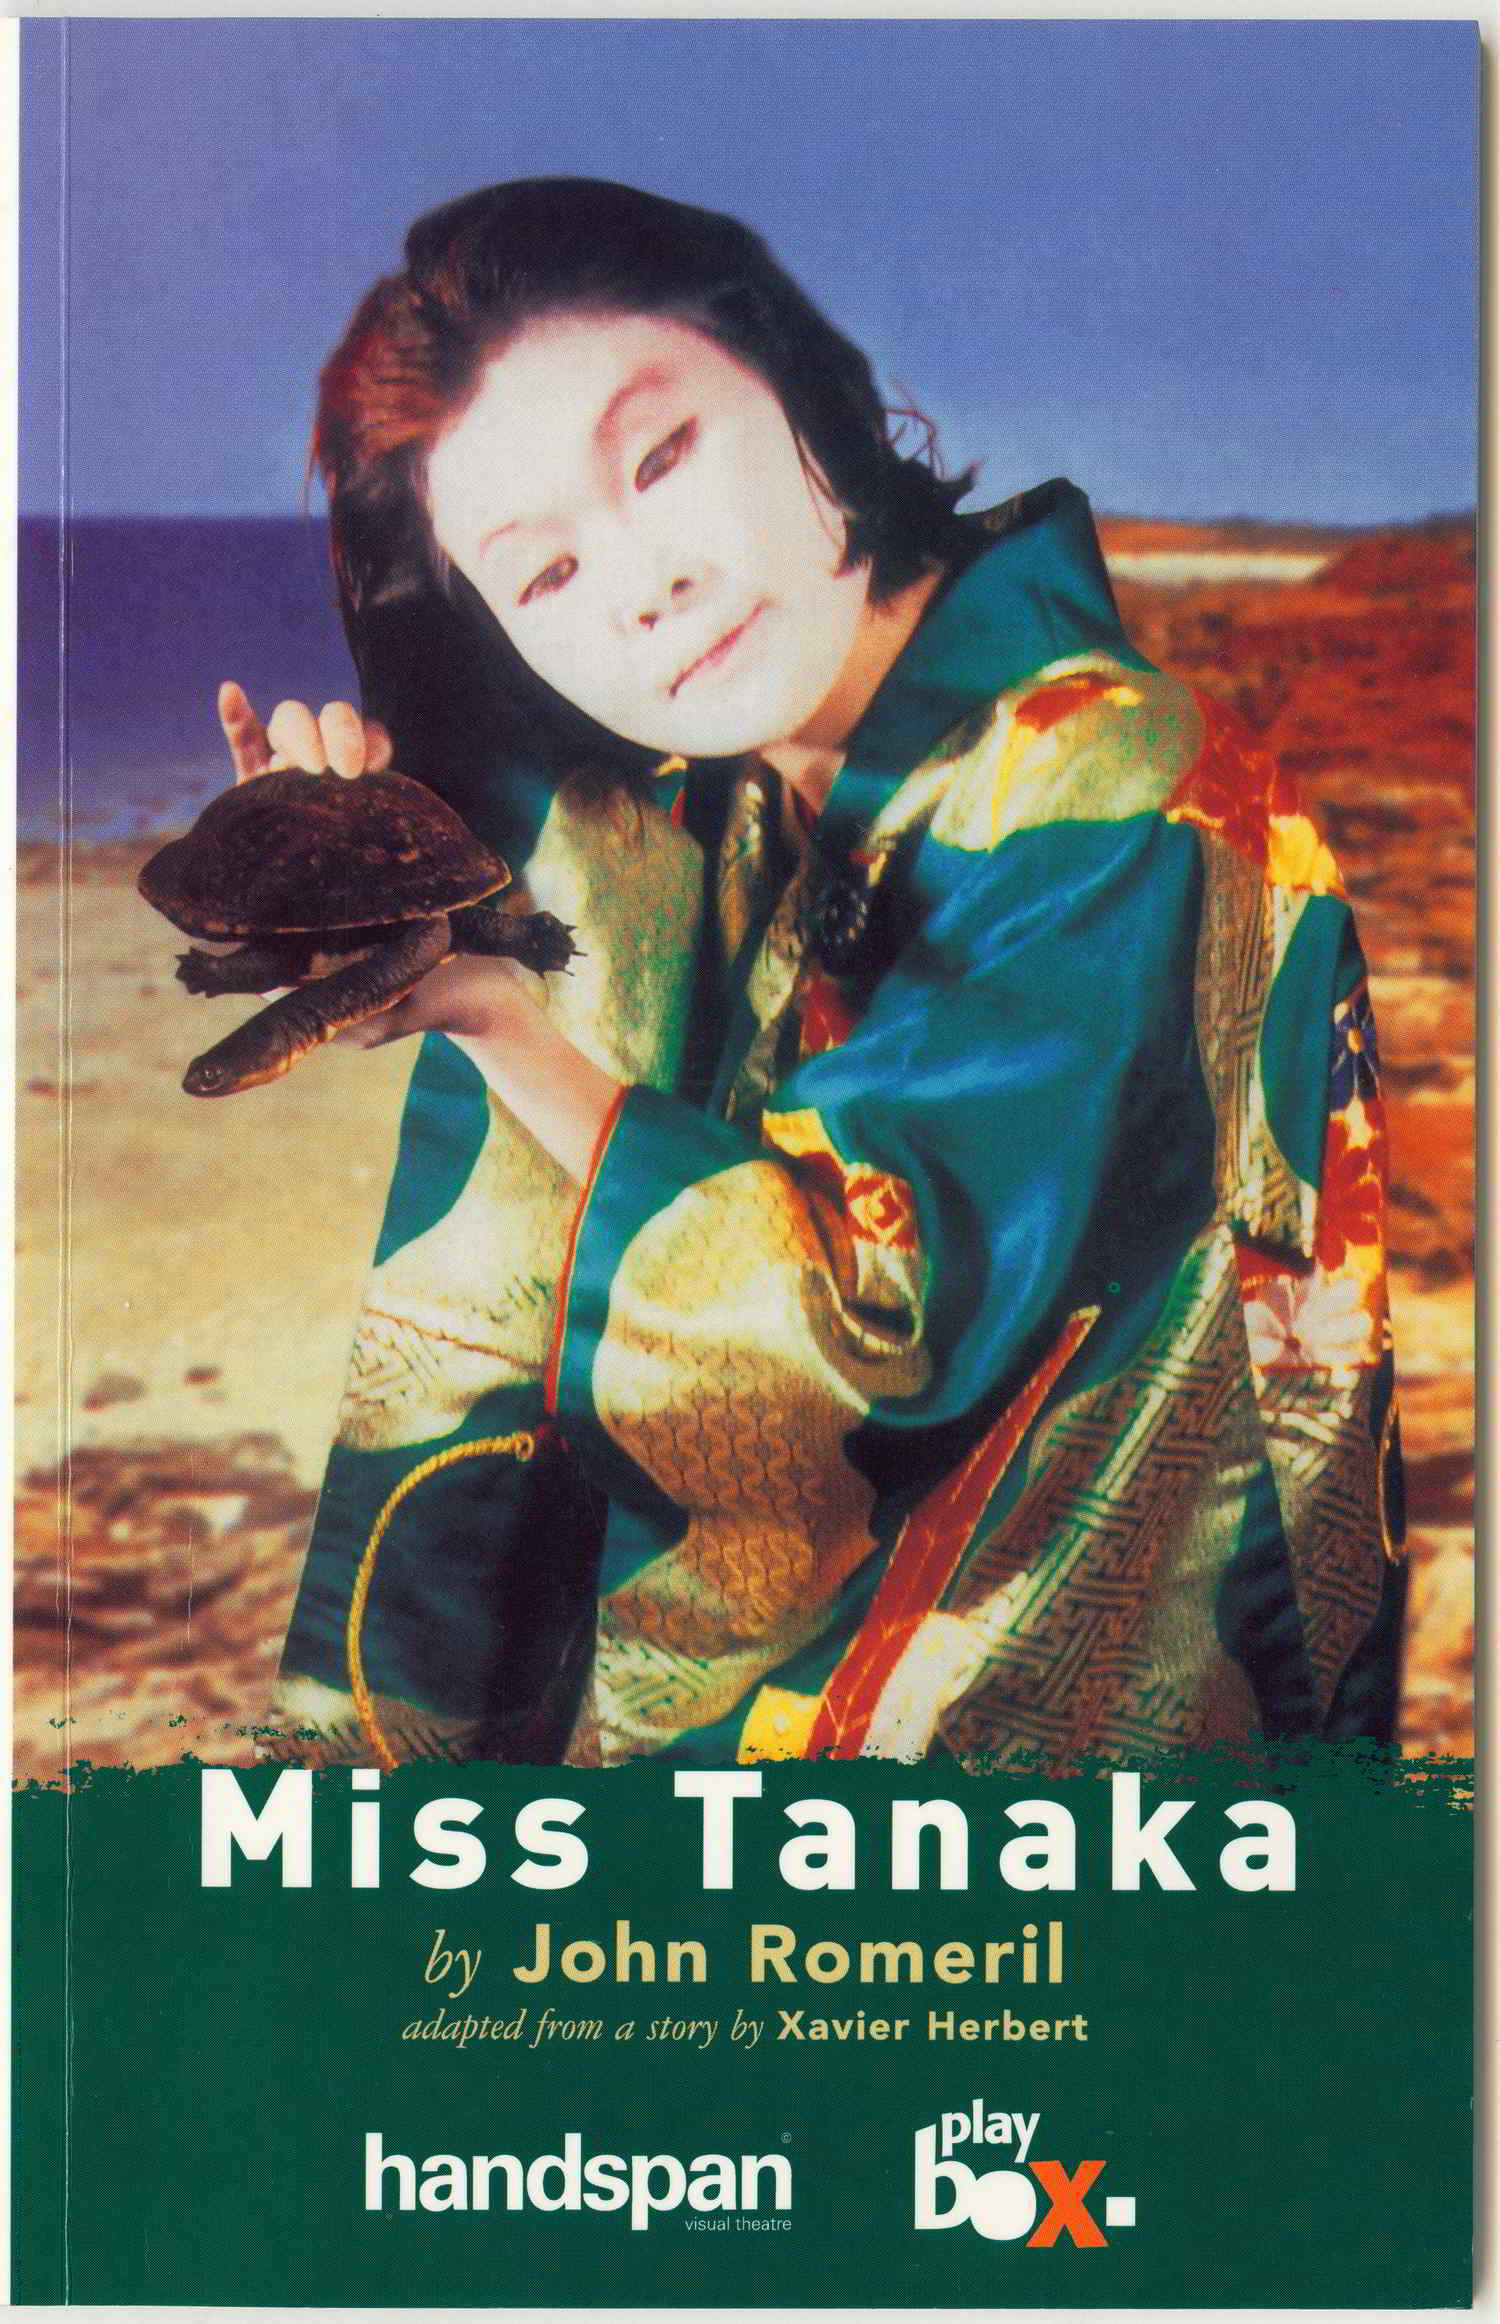 painting of a girl in traditional Japanese dress holding a turtle on a beach with printed show credits below